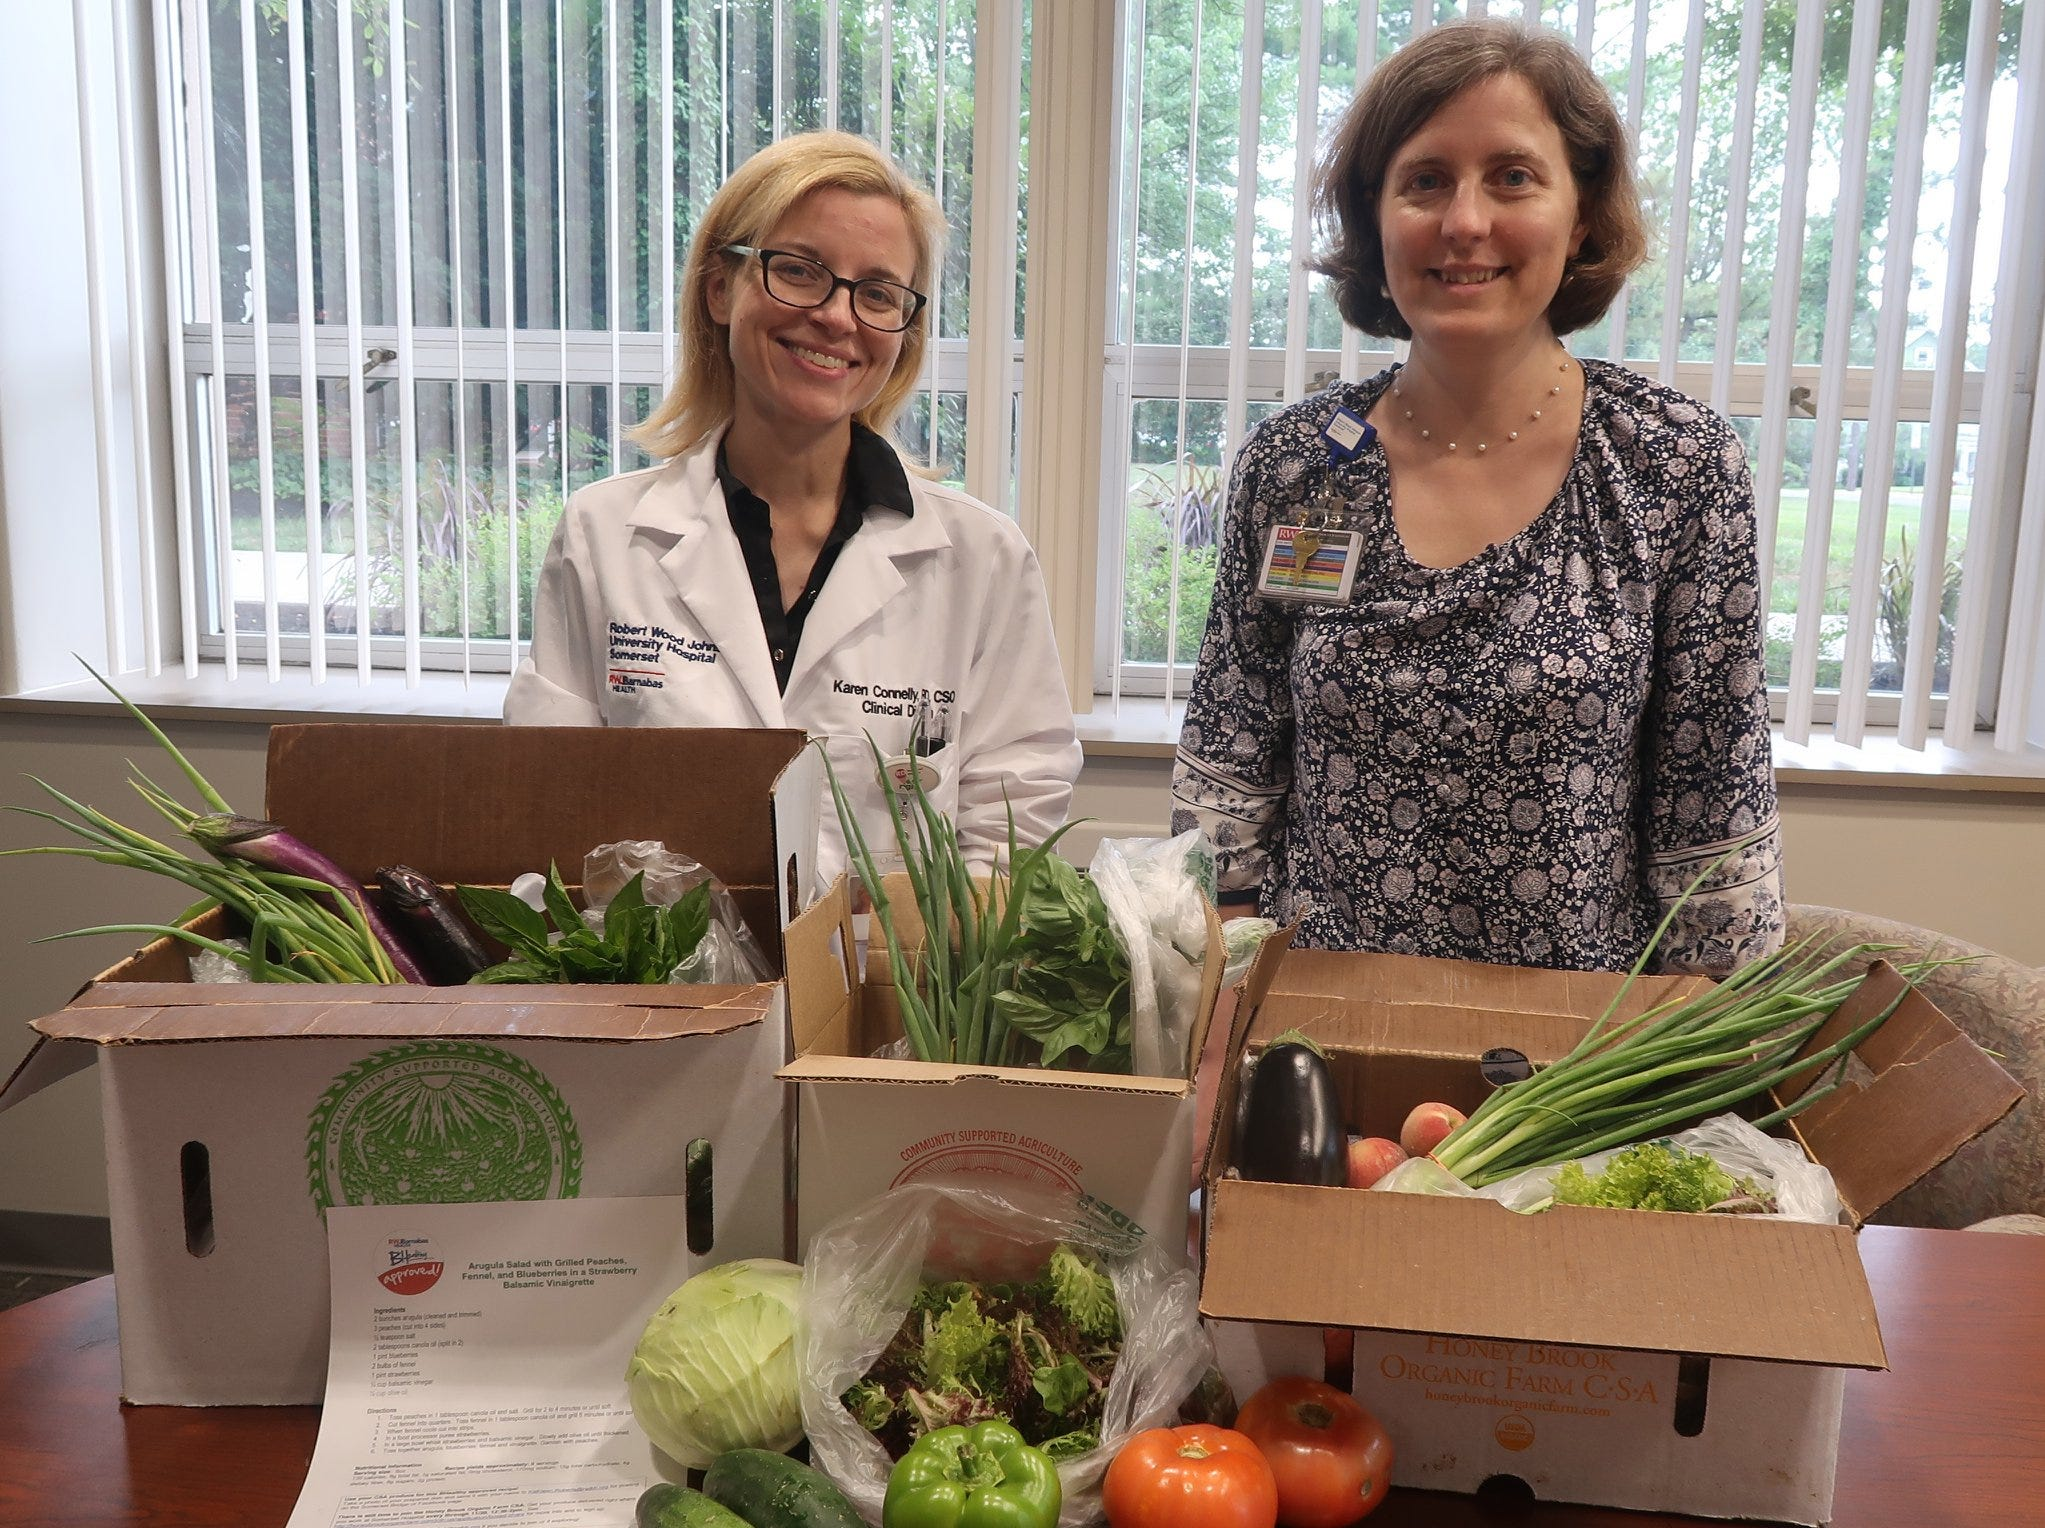 Robert Wood Johnson University Hospital employees with their farm shares from Honey Brook Organic Farm.